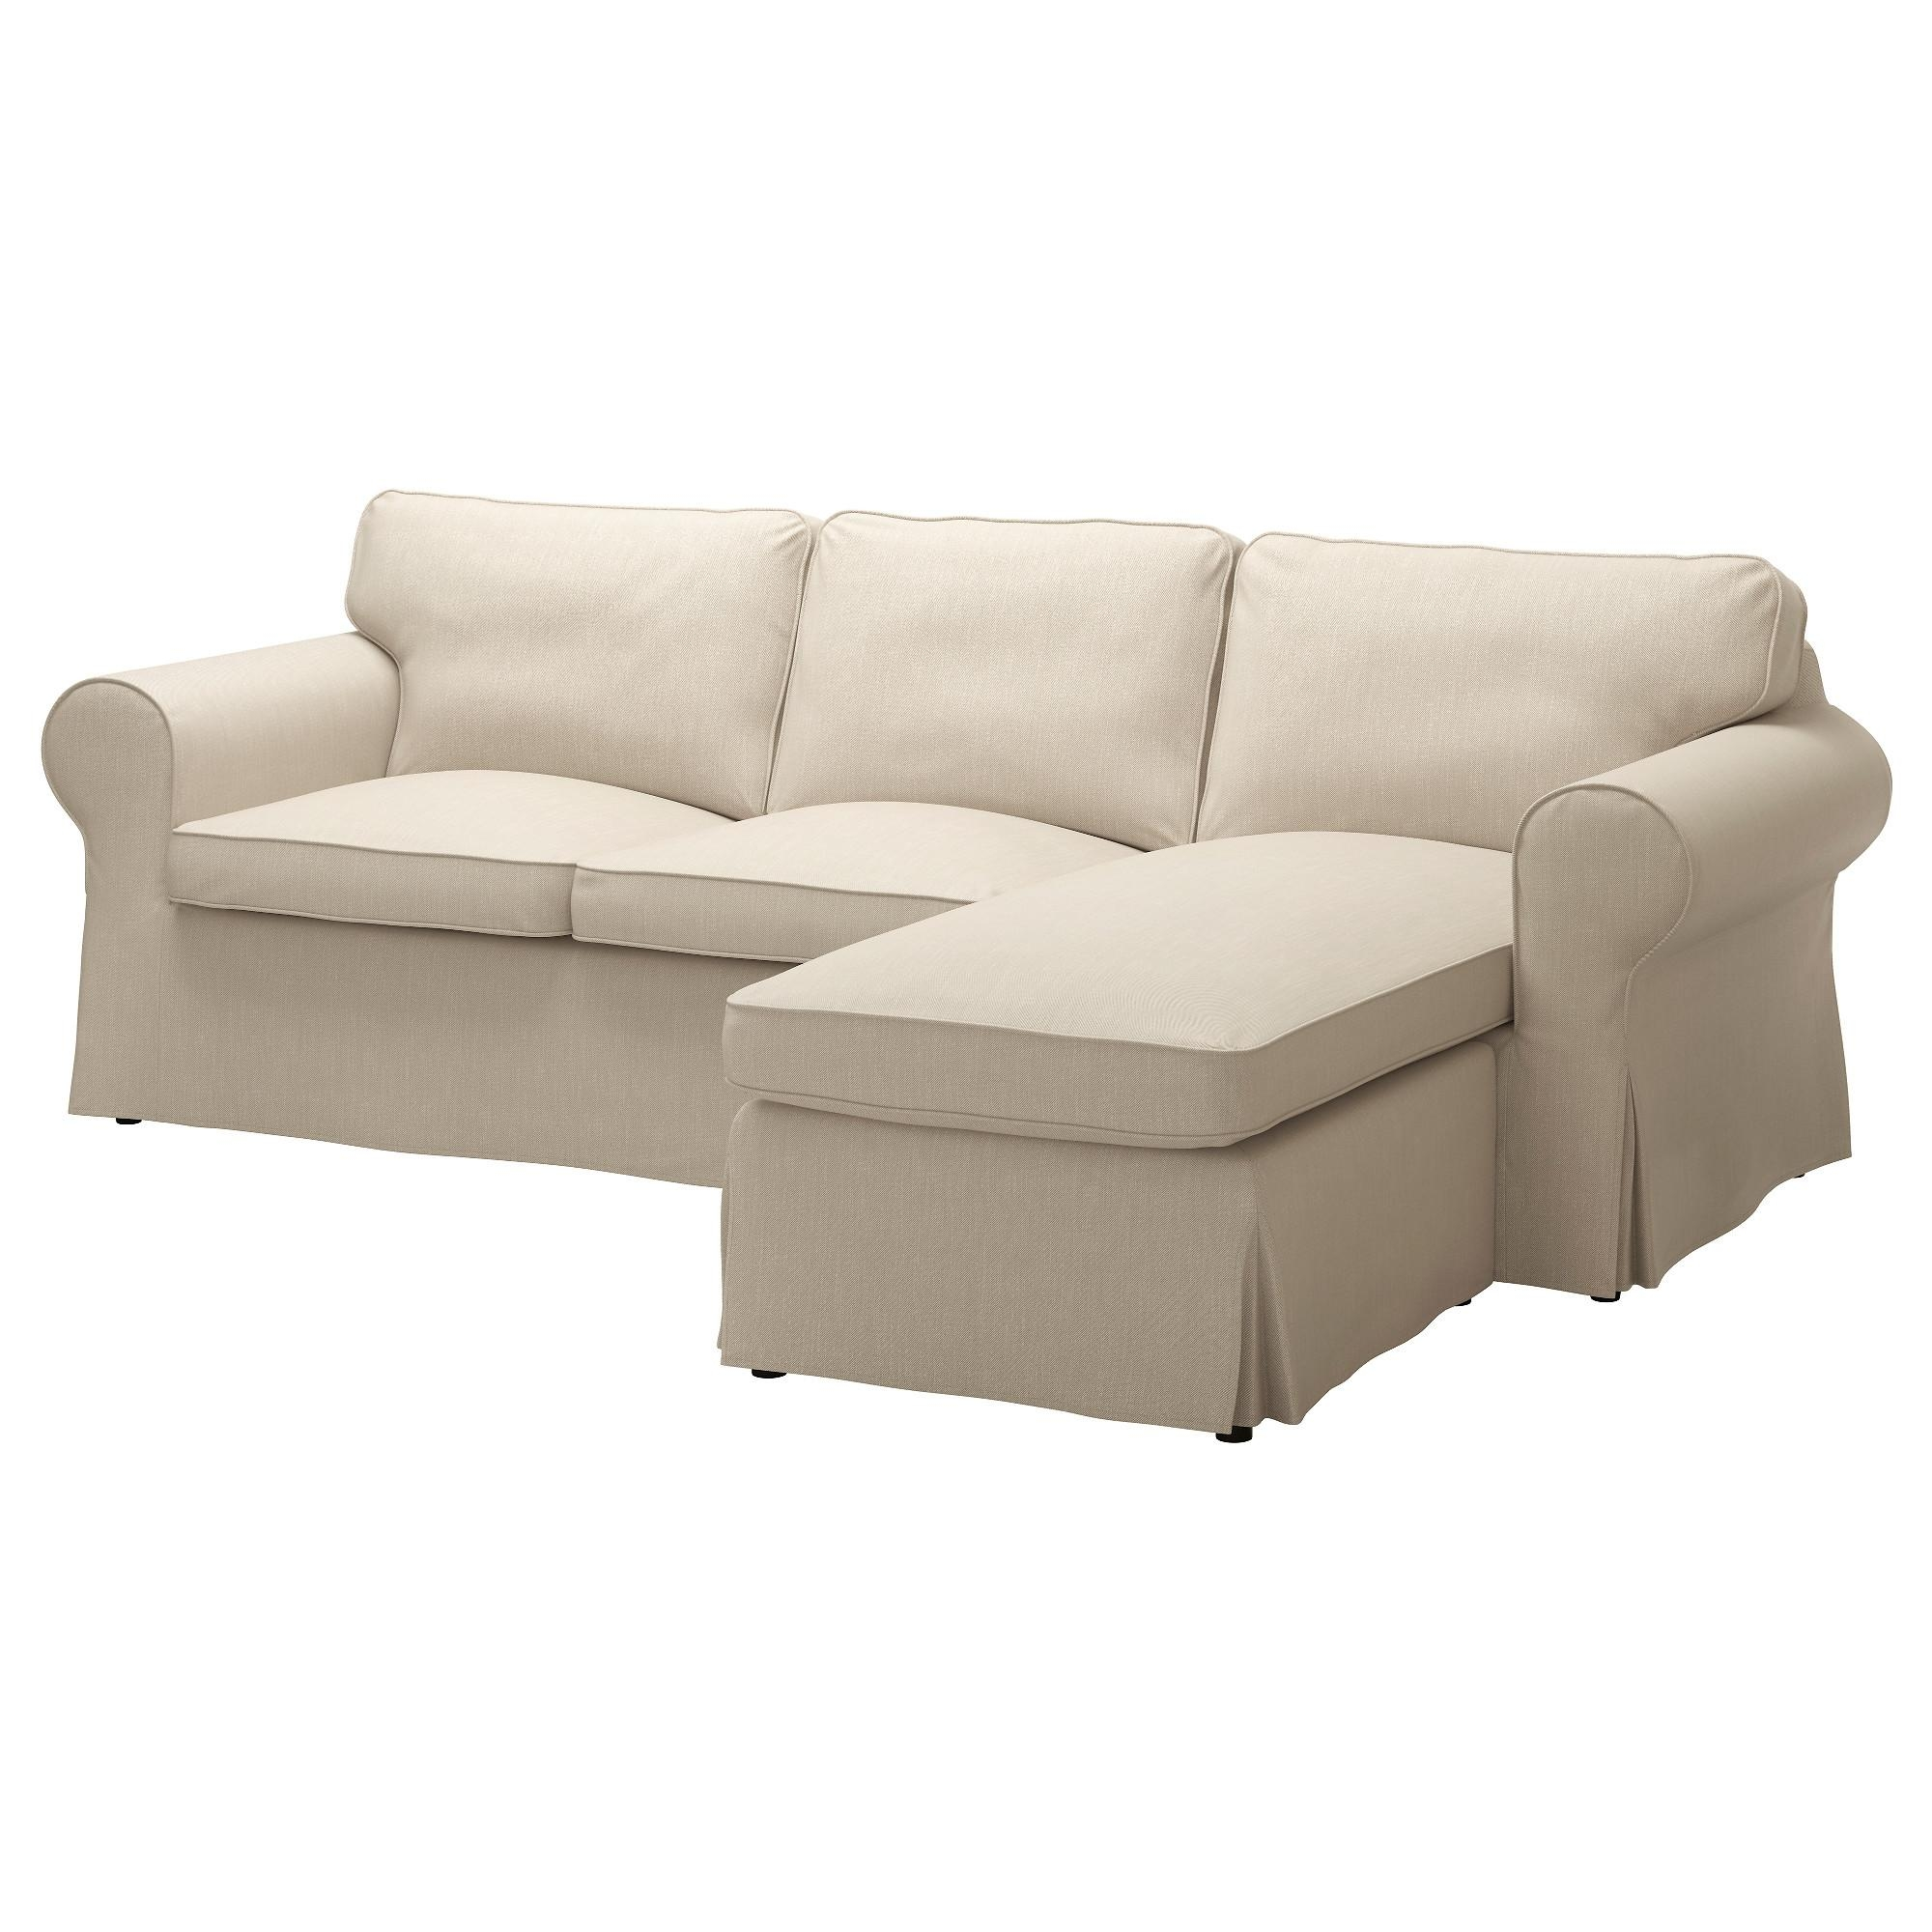 20 Photos Ikea Chaise Lounge Sofa Sofa Ideas